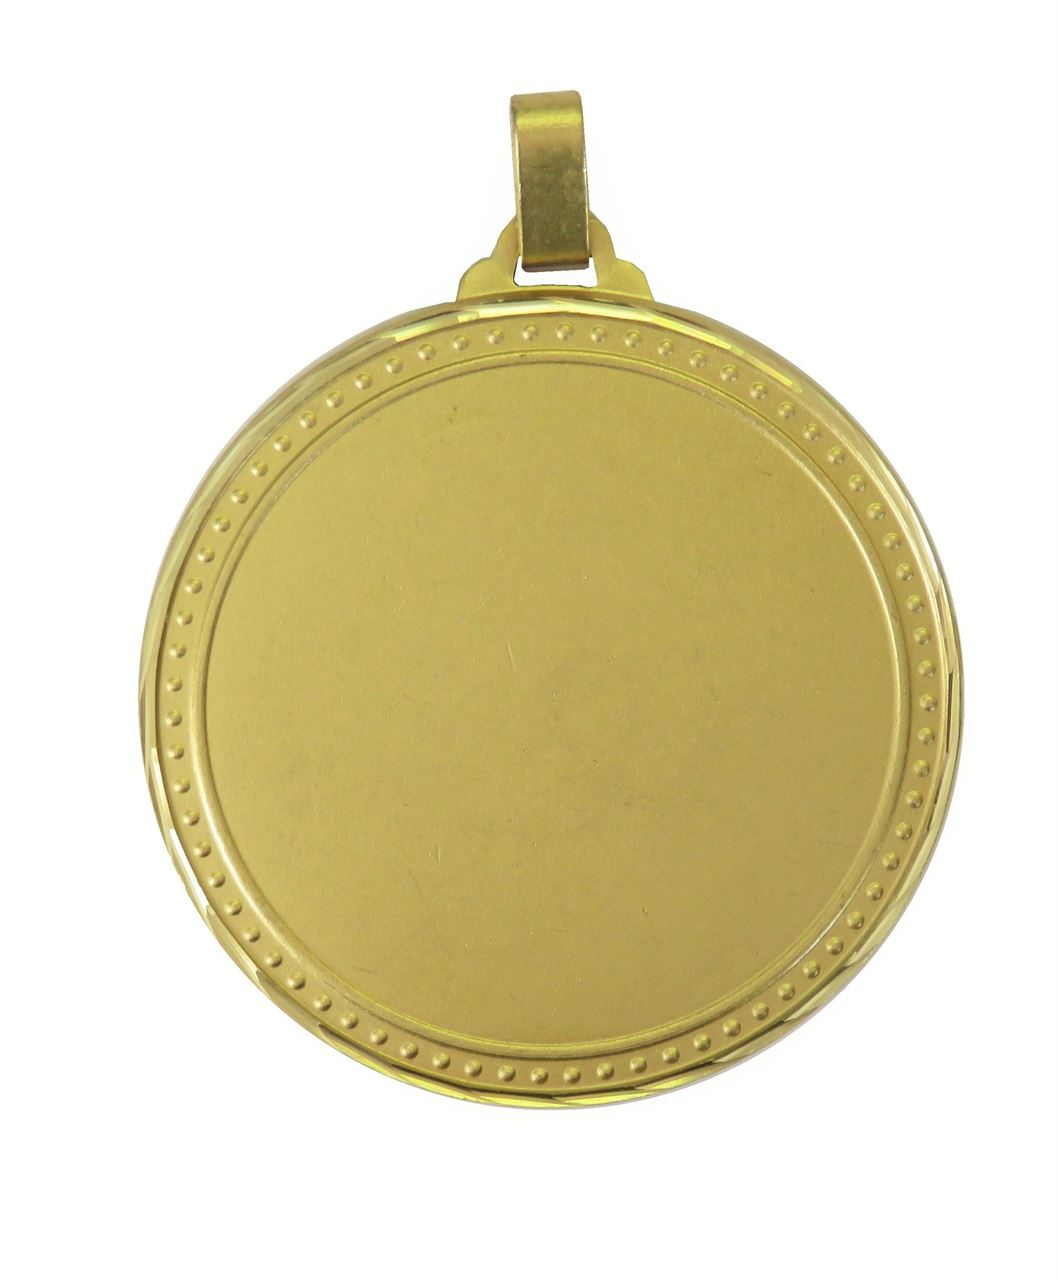 Gold Faceted Elementary Medal (size: 60mm) - 5411F